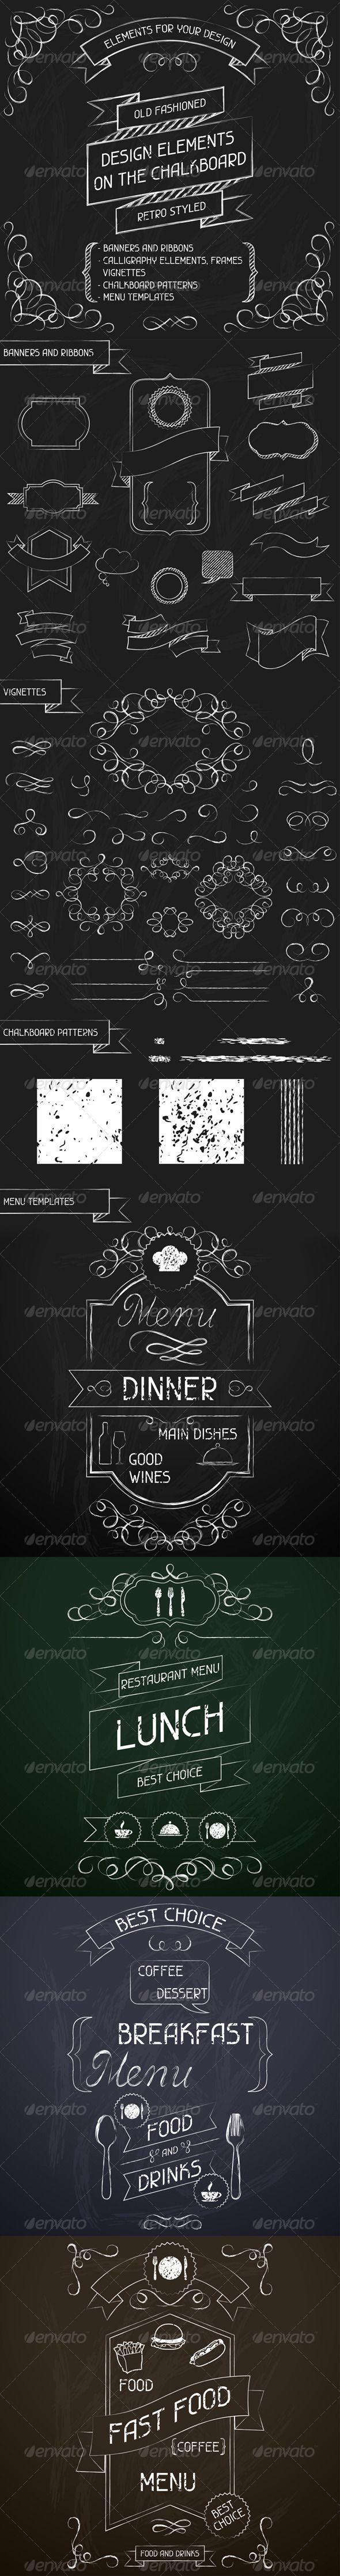 GraphicRiver Design Elements on the Chalkboard 4742029